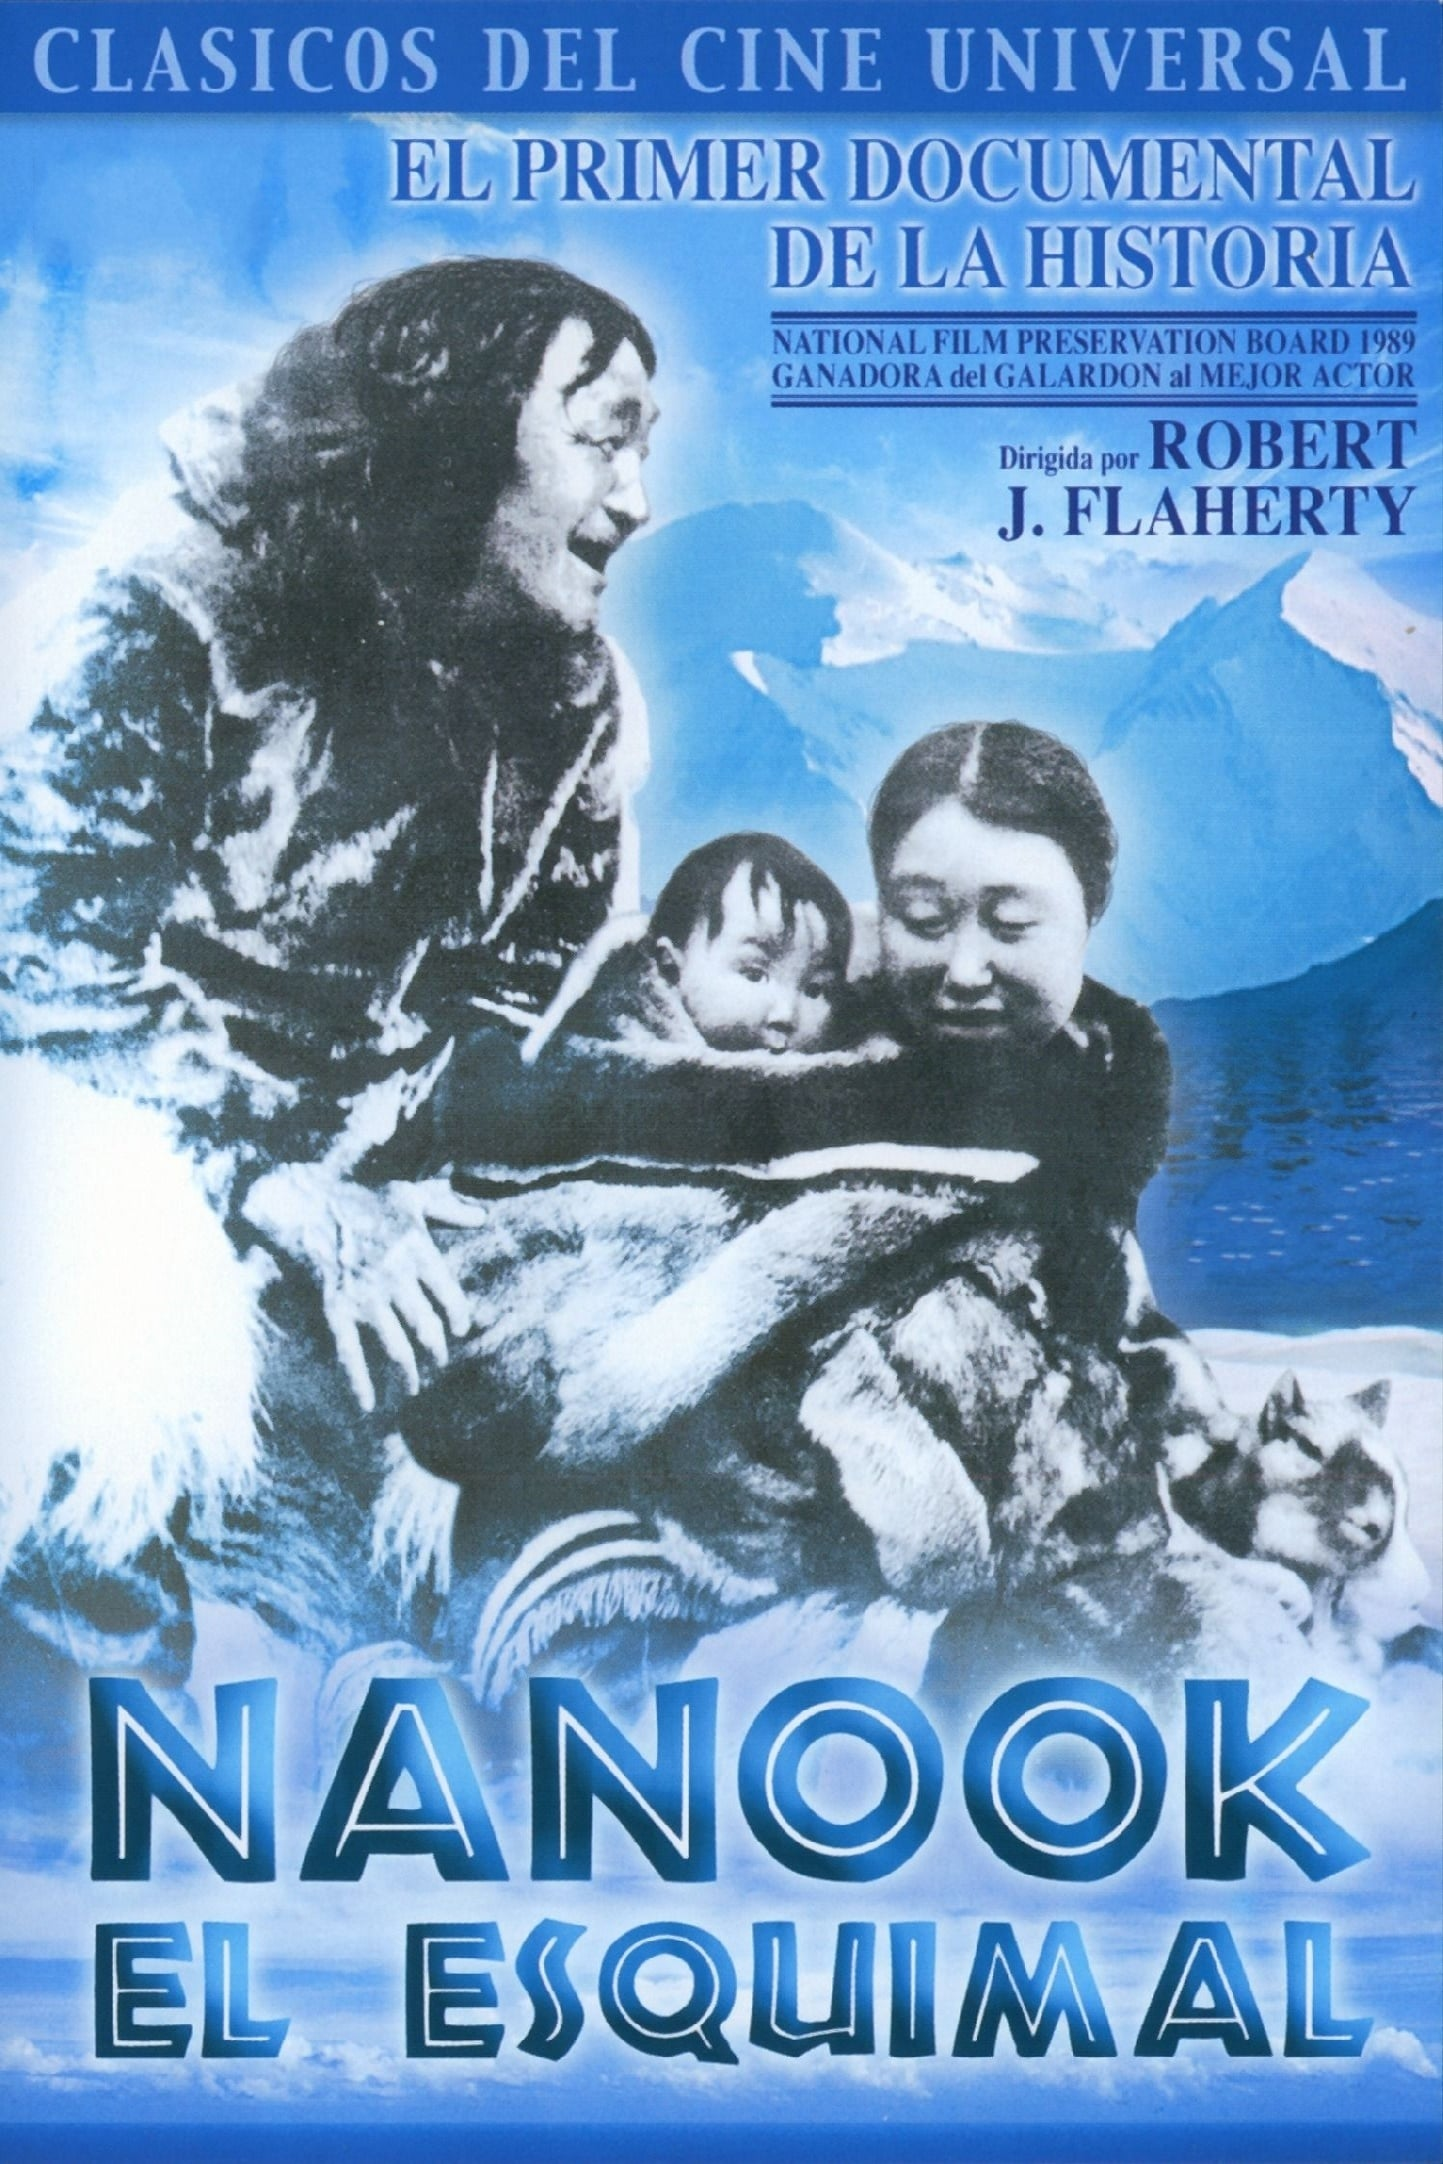 a documentary a paper on robert flahertys nanook of the north This paper analyzes robert flaherty's contributions to cinema, particularly with regards to documentaries it focuses on flaherty's 1922 documentary film, nanook of the north and how it has become inextricably associated with the development of modern documentary film.